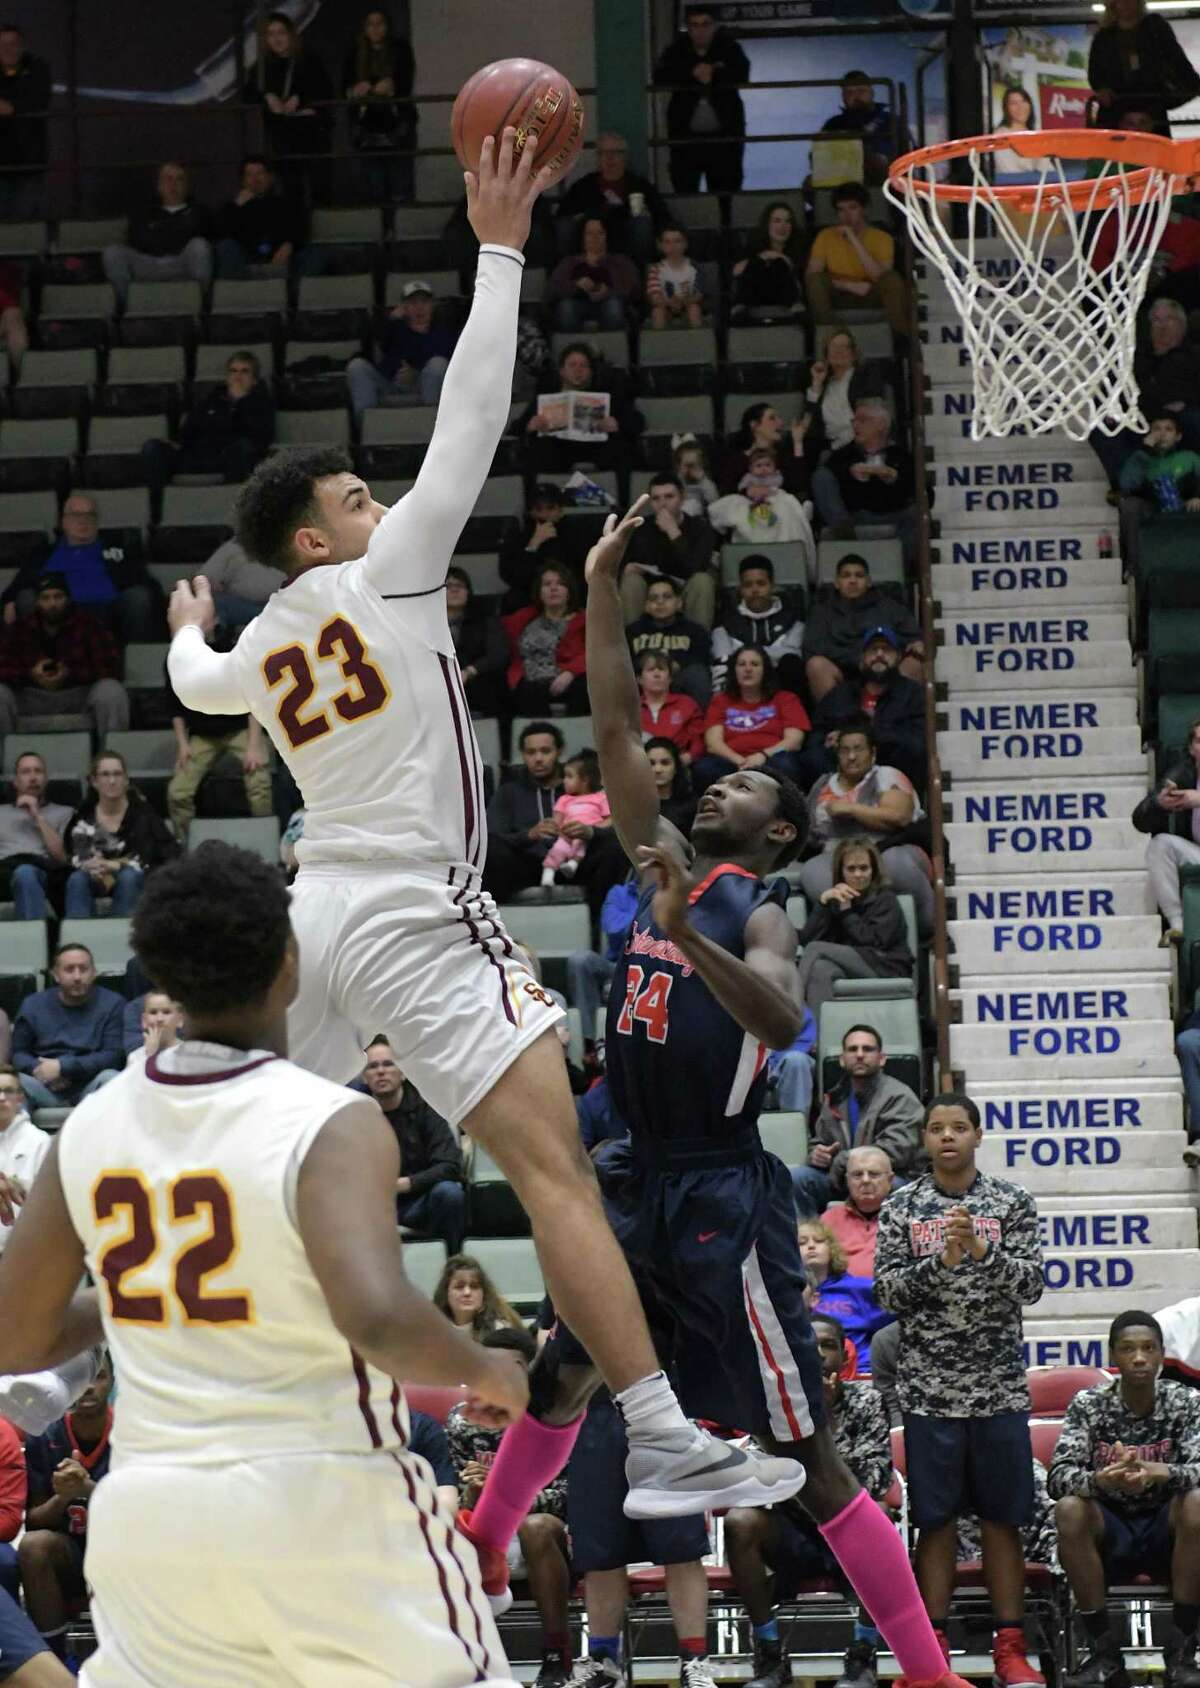 Isaiah Moll of Colonie drives to the basket over John Ryals of Schenectady during their Class AA semifinal game at the Glens Falls Civic Center on Tuesday, Feb. 28, 2017, in Glens Falls, N.Y. (Paul Buckowski / Times Union)